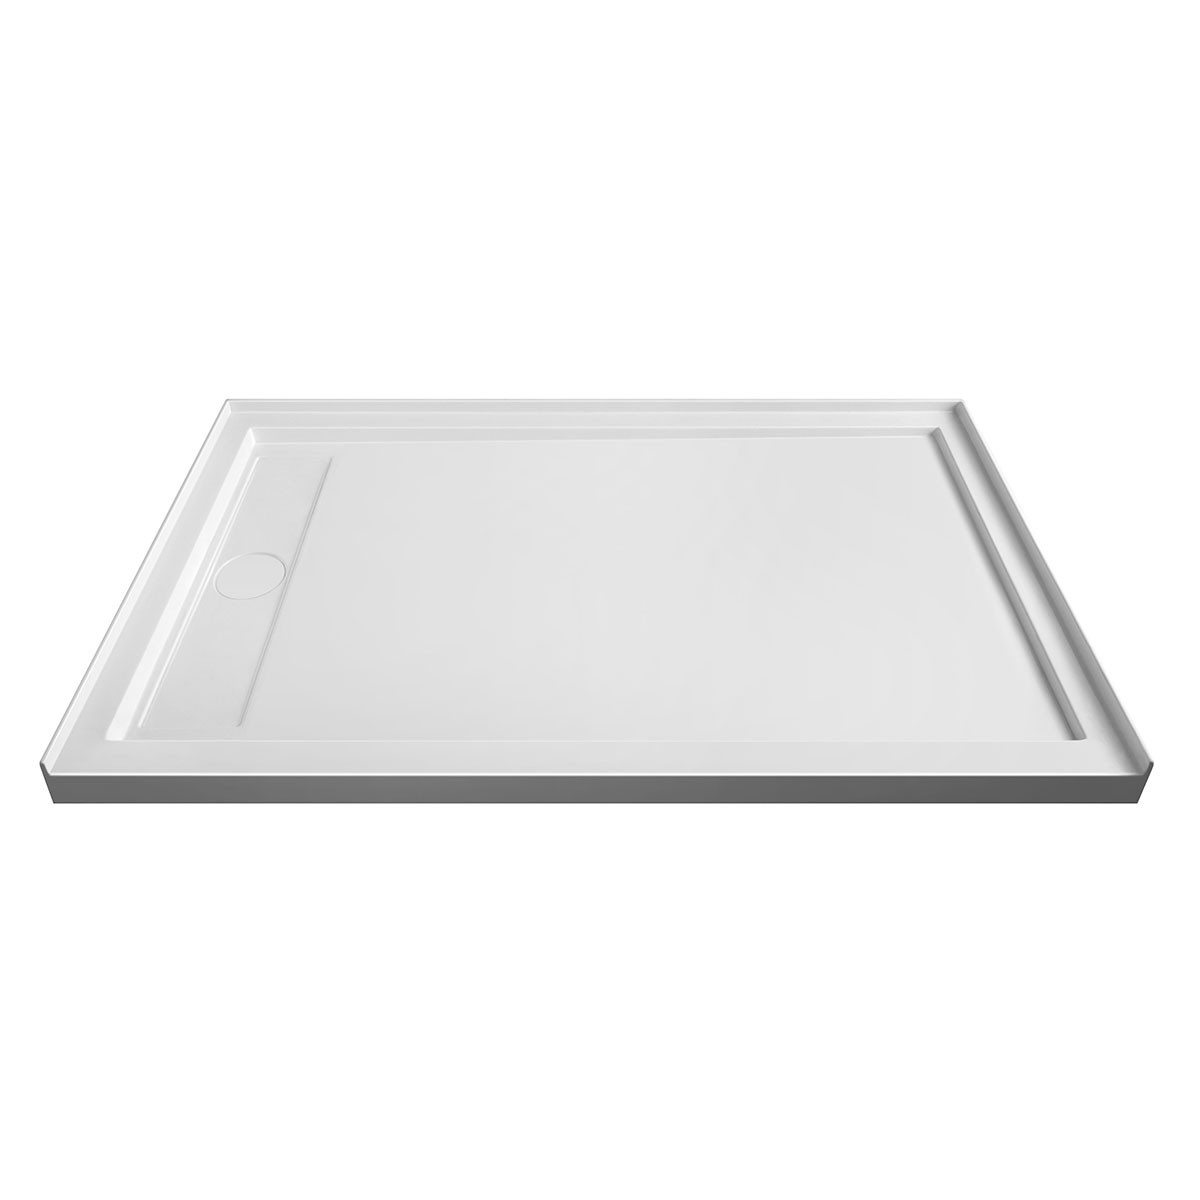 60 x 36 In Rectangular Shower Base for Left Corner Installation (DK-STA-18004)